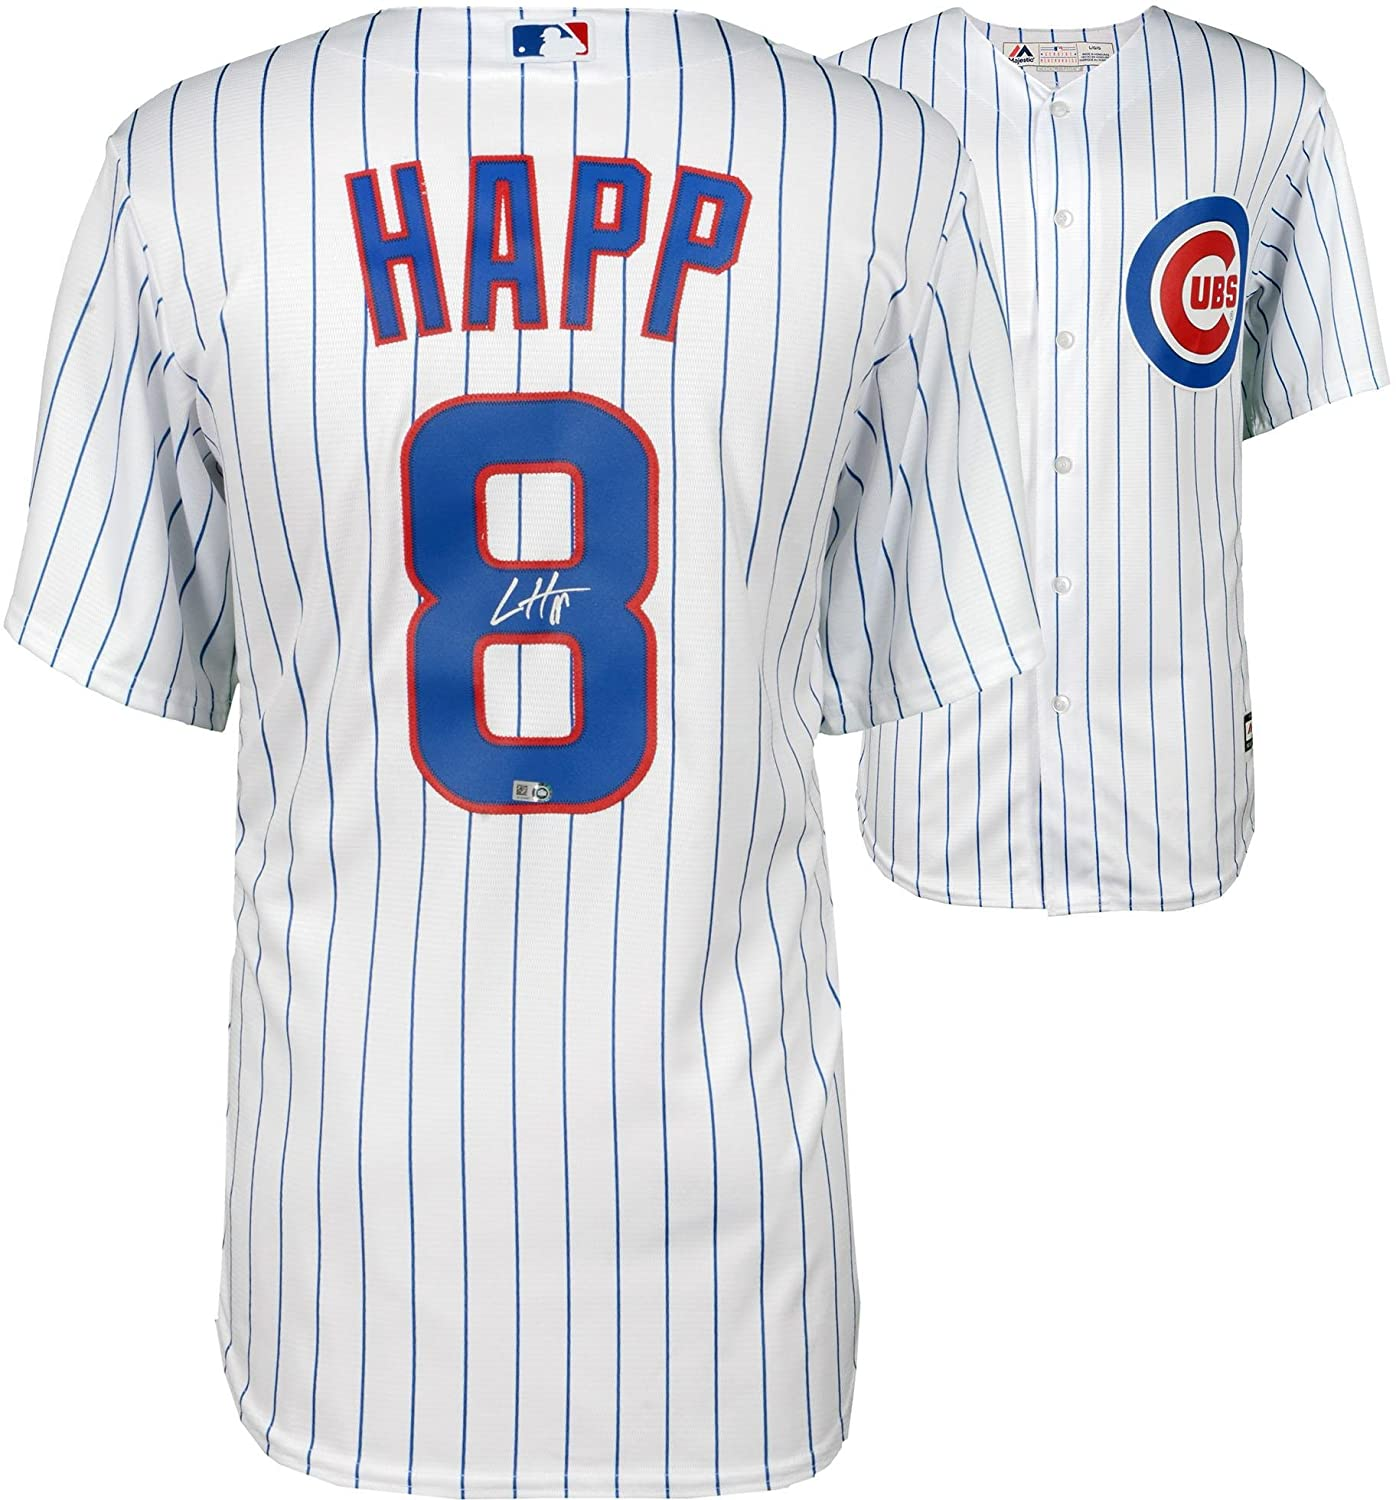 696c3b0ba Ian Happ Chicago Cubs Autographed Majestic White Replica Jersey - Fanatics  Authentic Certified - Autographed MLB Jerseys at Amazon's Sports  Collectibles ...